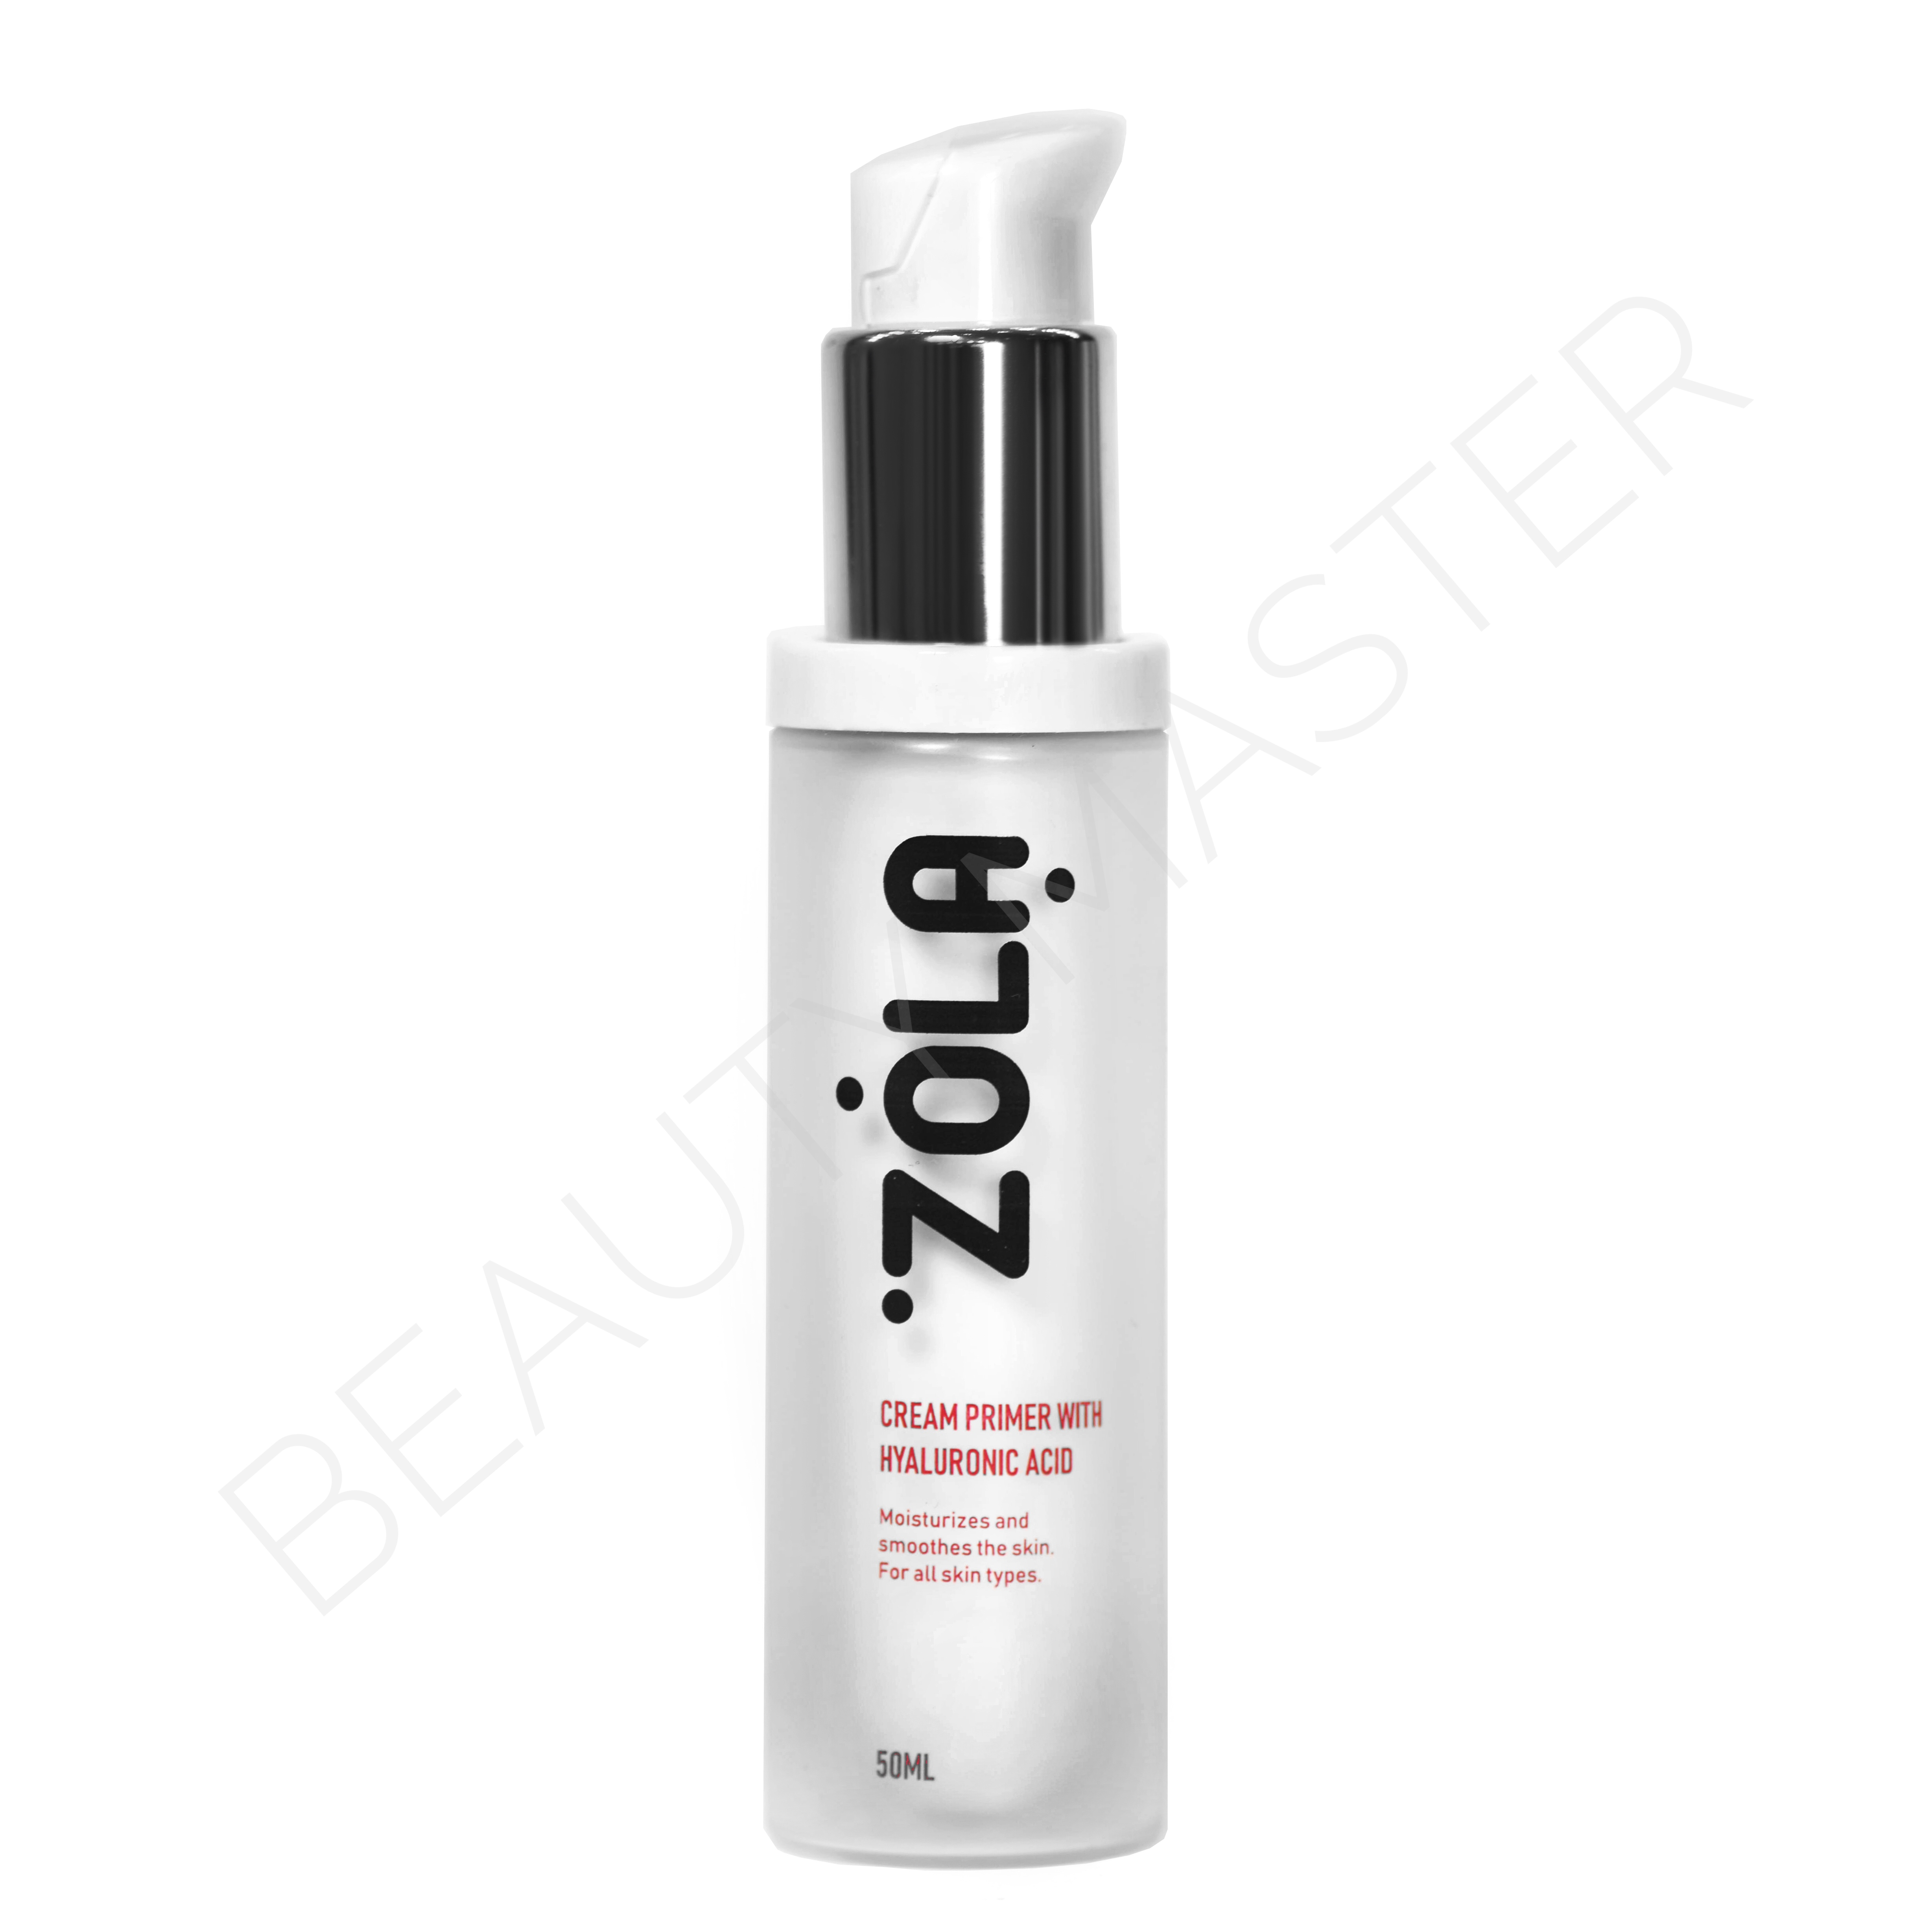 ZOLA Крем Праймер под макияж CREAM PRIMER WITH HYALURONIC ACID 50мл